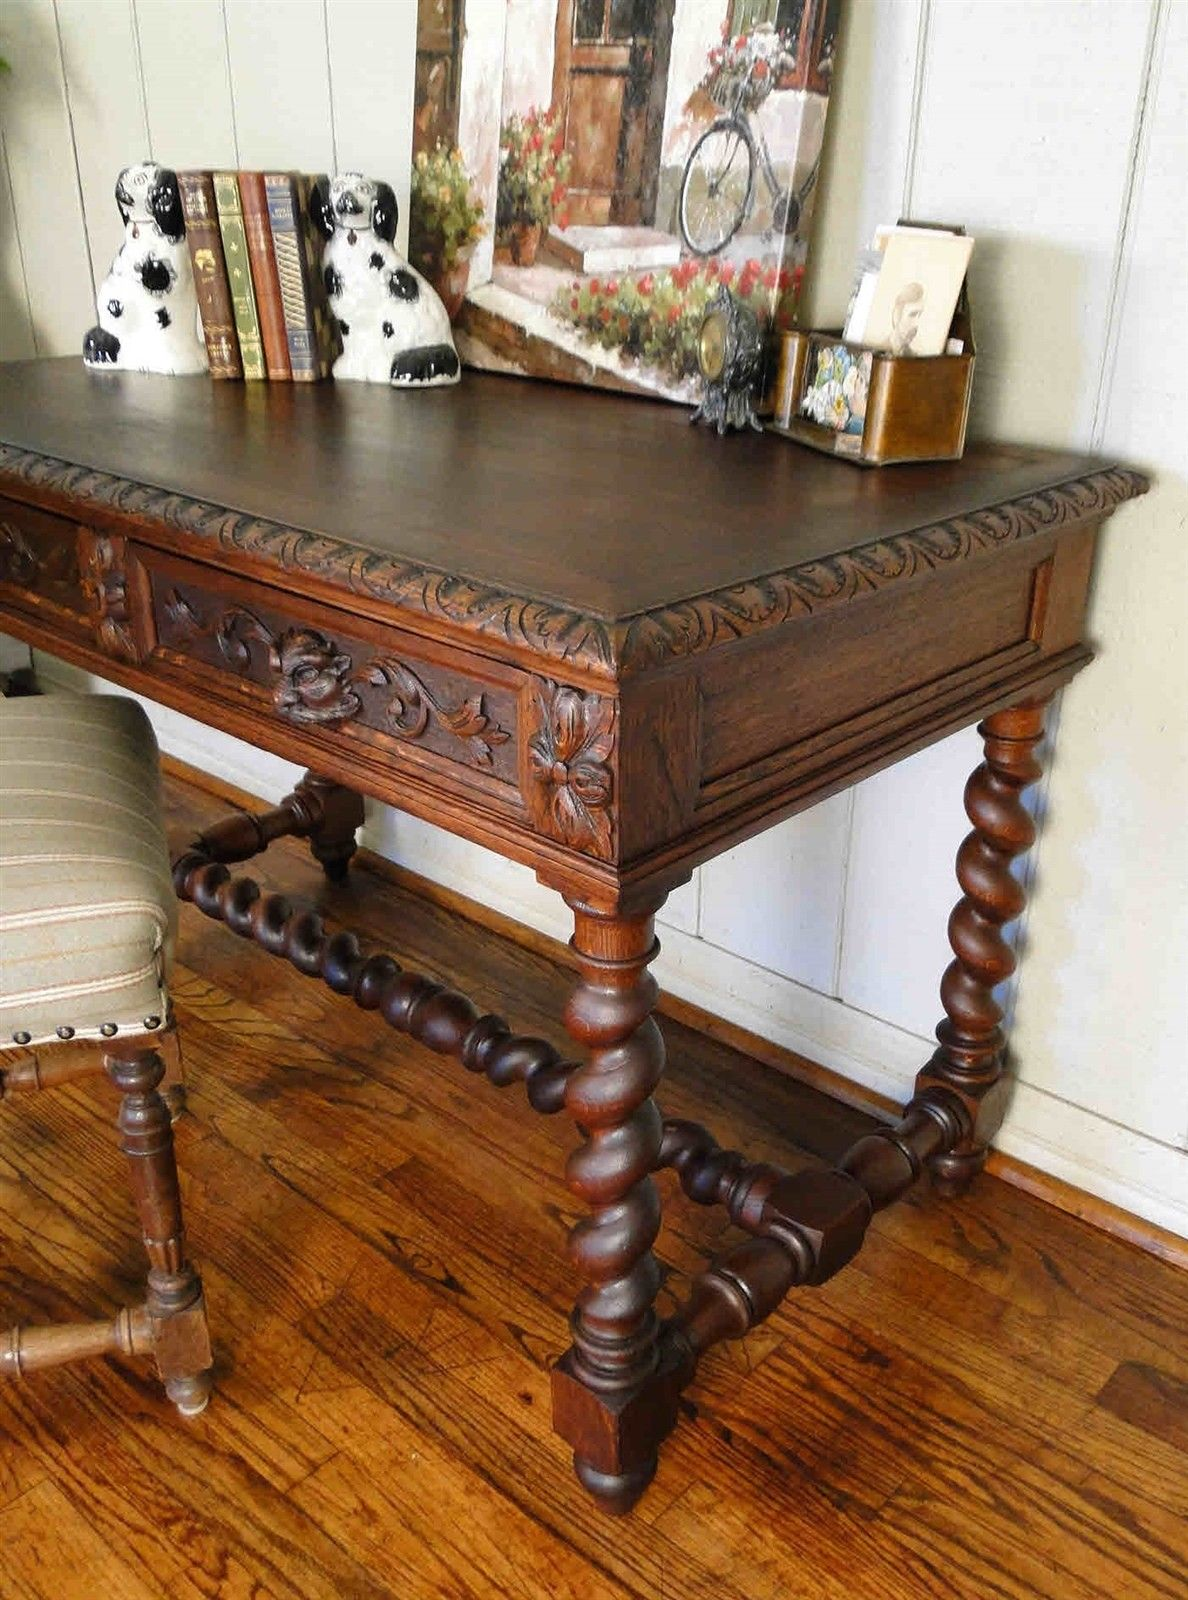 Antique French Carved Oak Barley Barley Twist Desk Hall